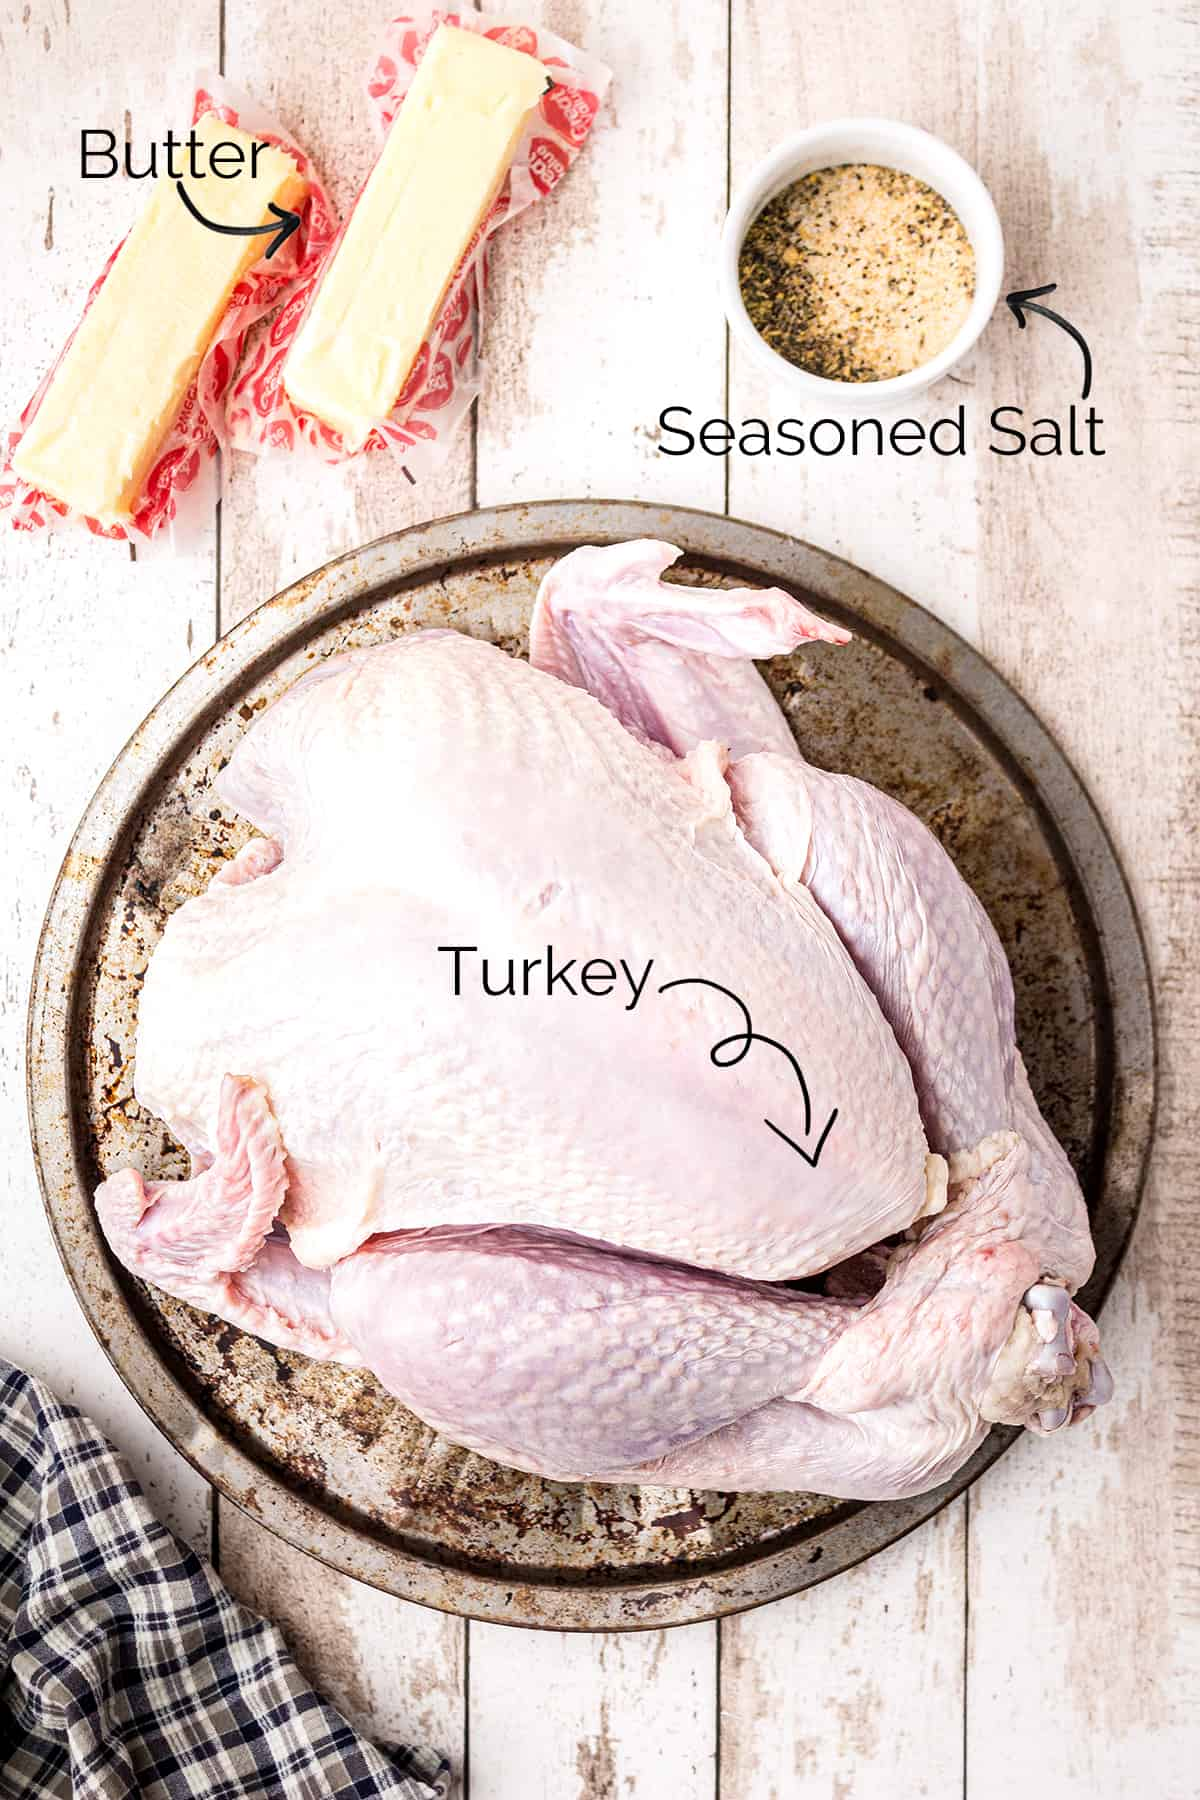 Ingredients of butter, seasoned salt, and turkey on a tray.